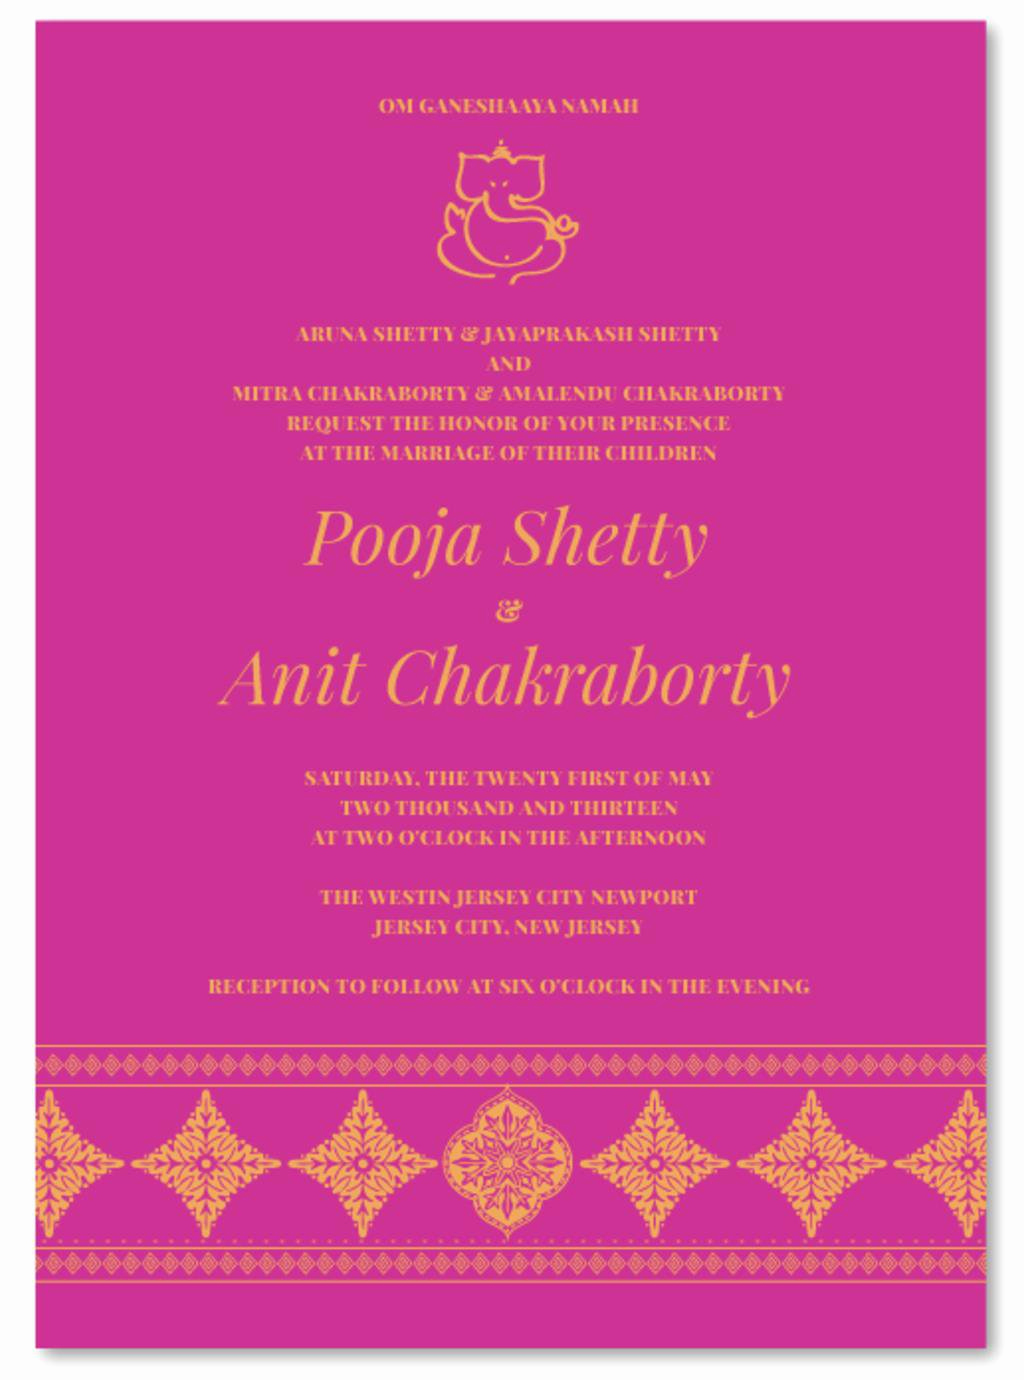 Indian Wedding Invitation Wording Awesome Friends Invitation for Wedding